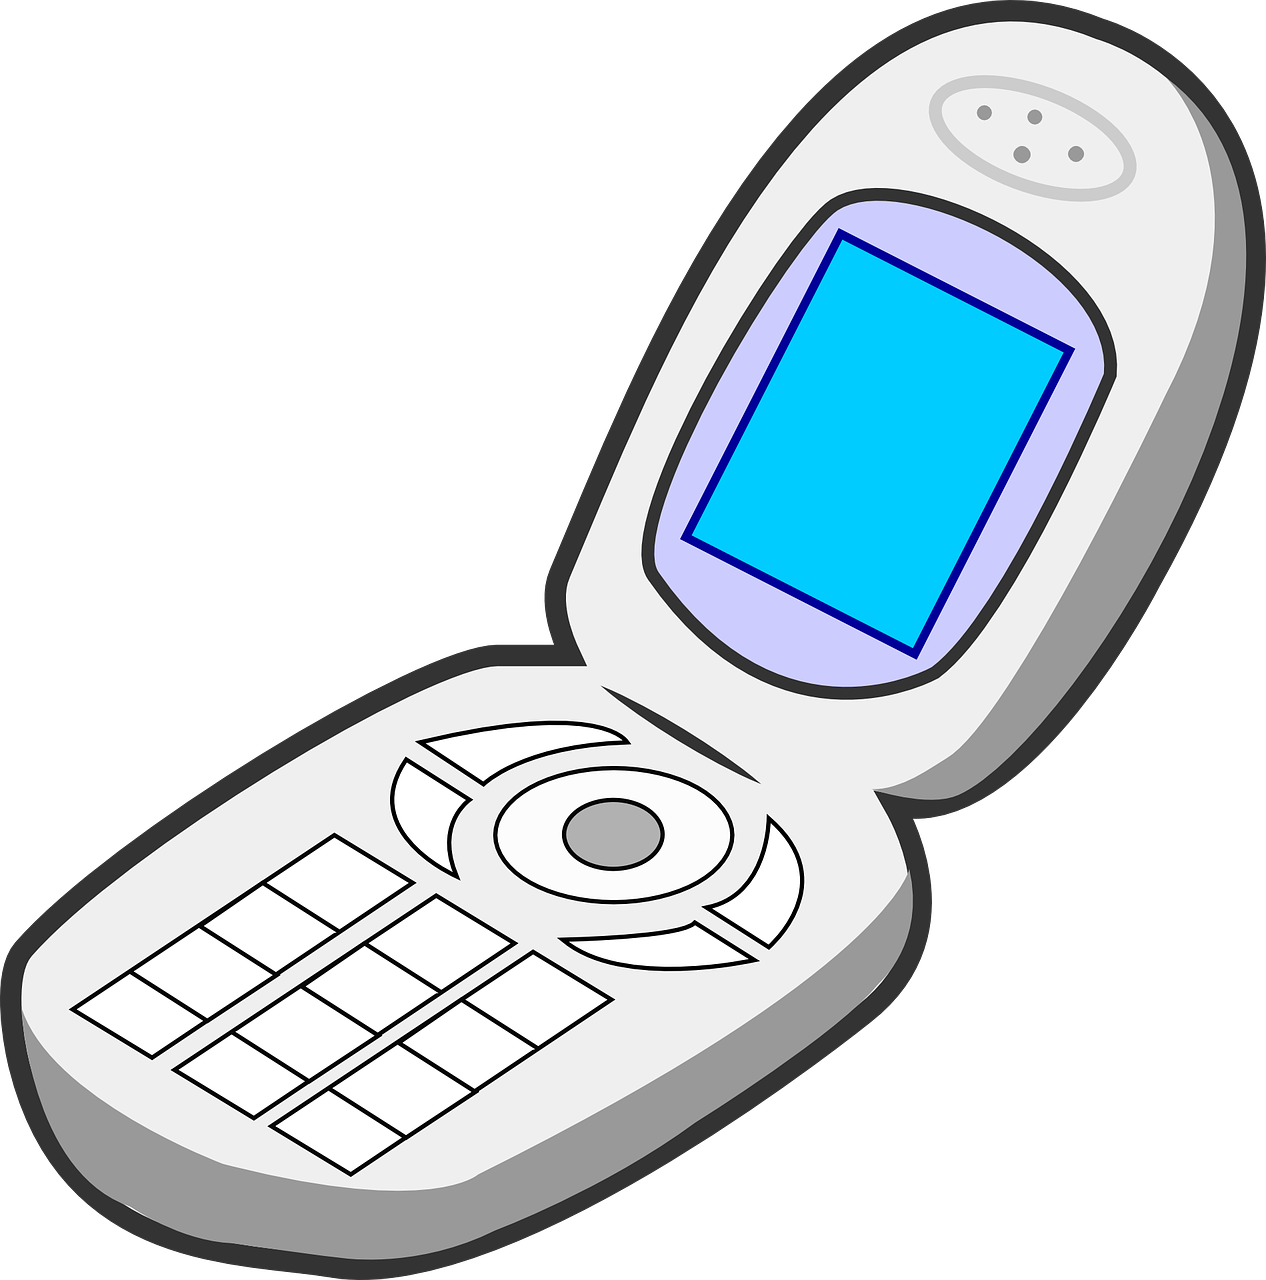 Flip phone png. Phones for the visually